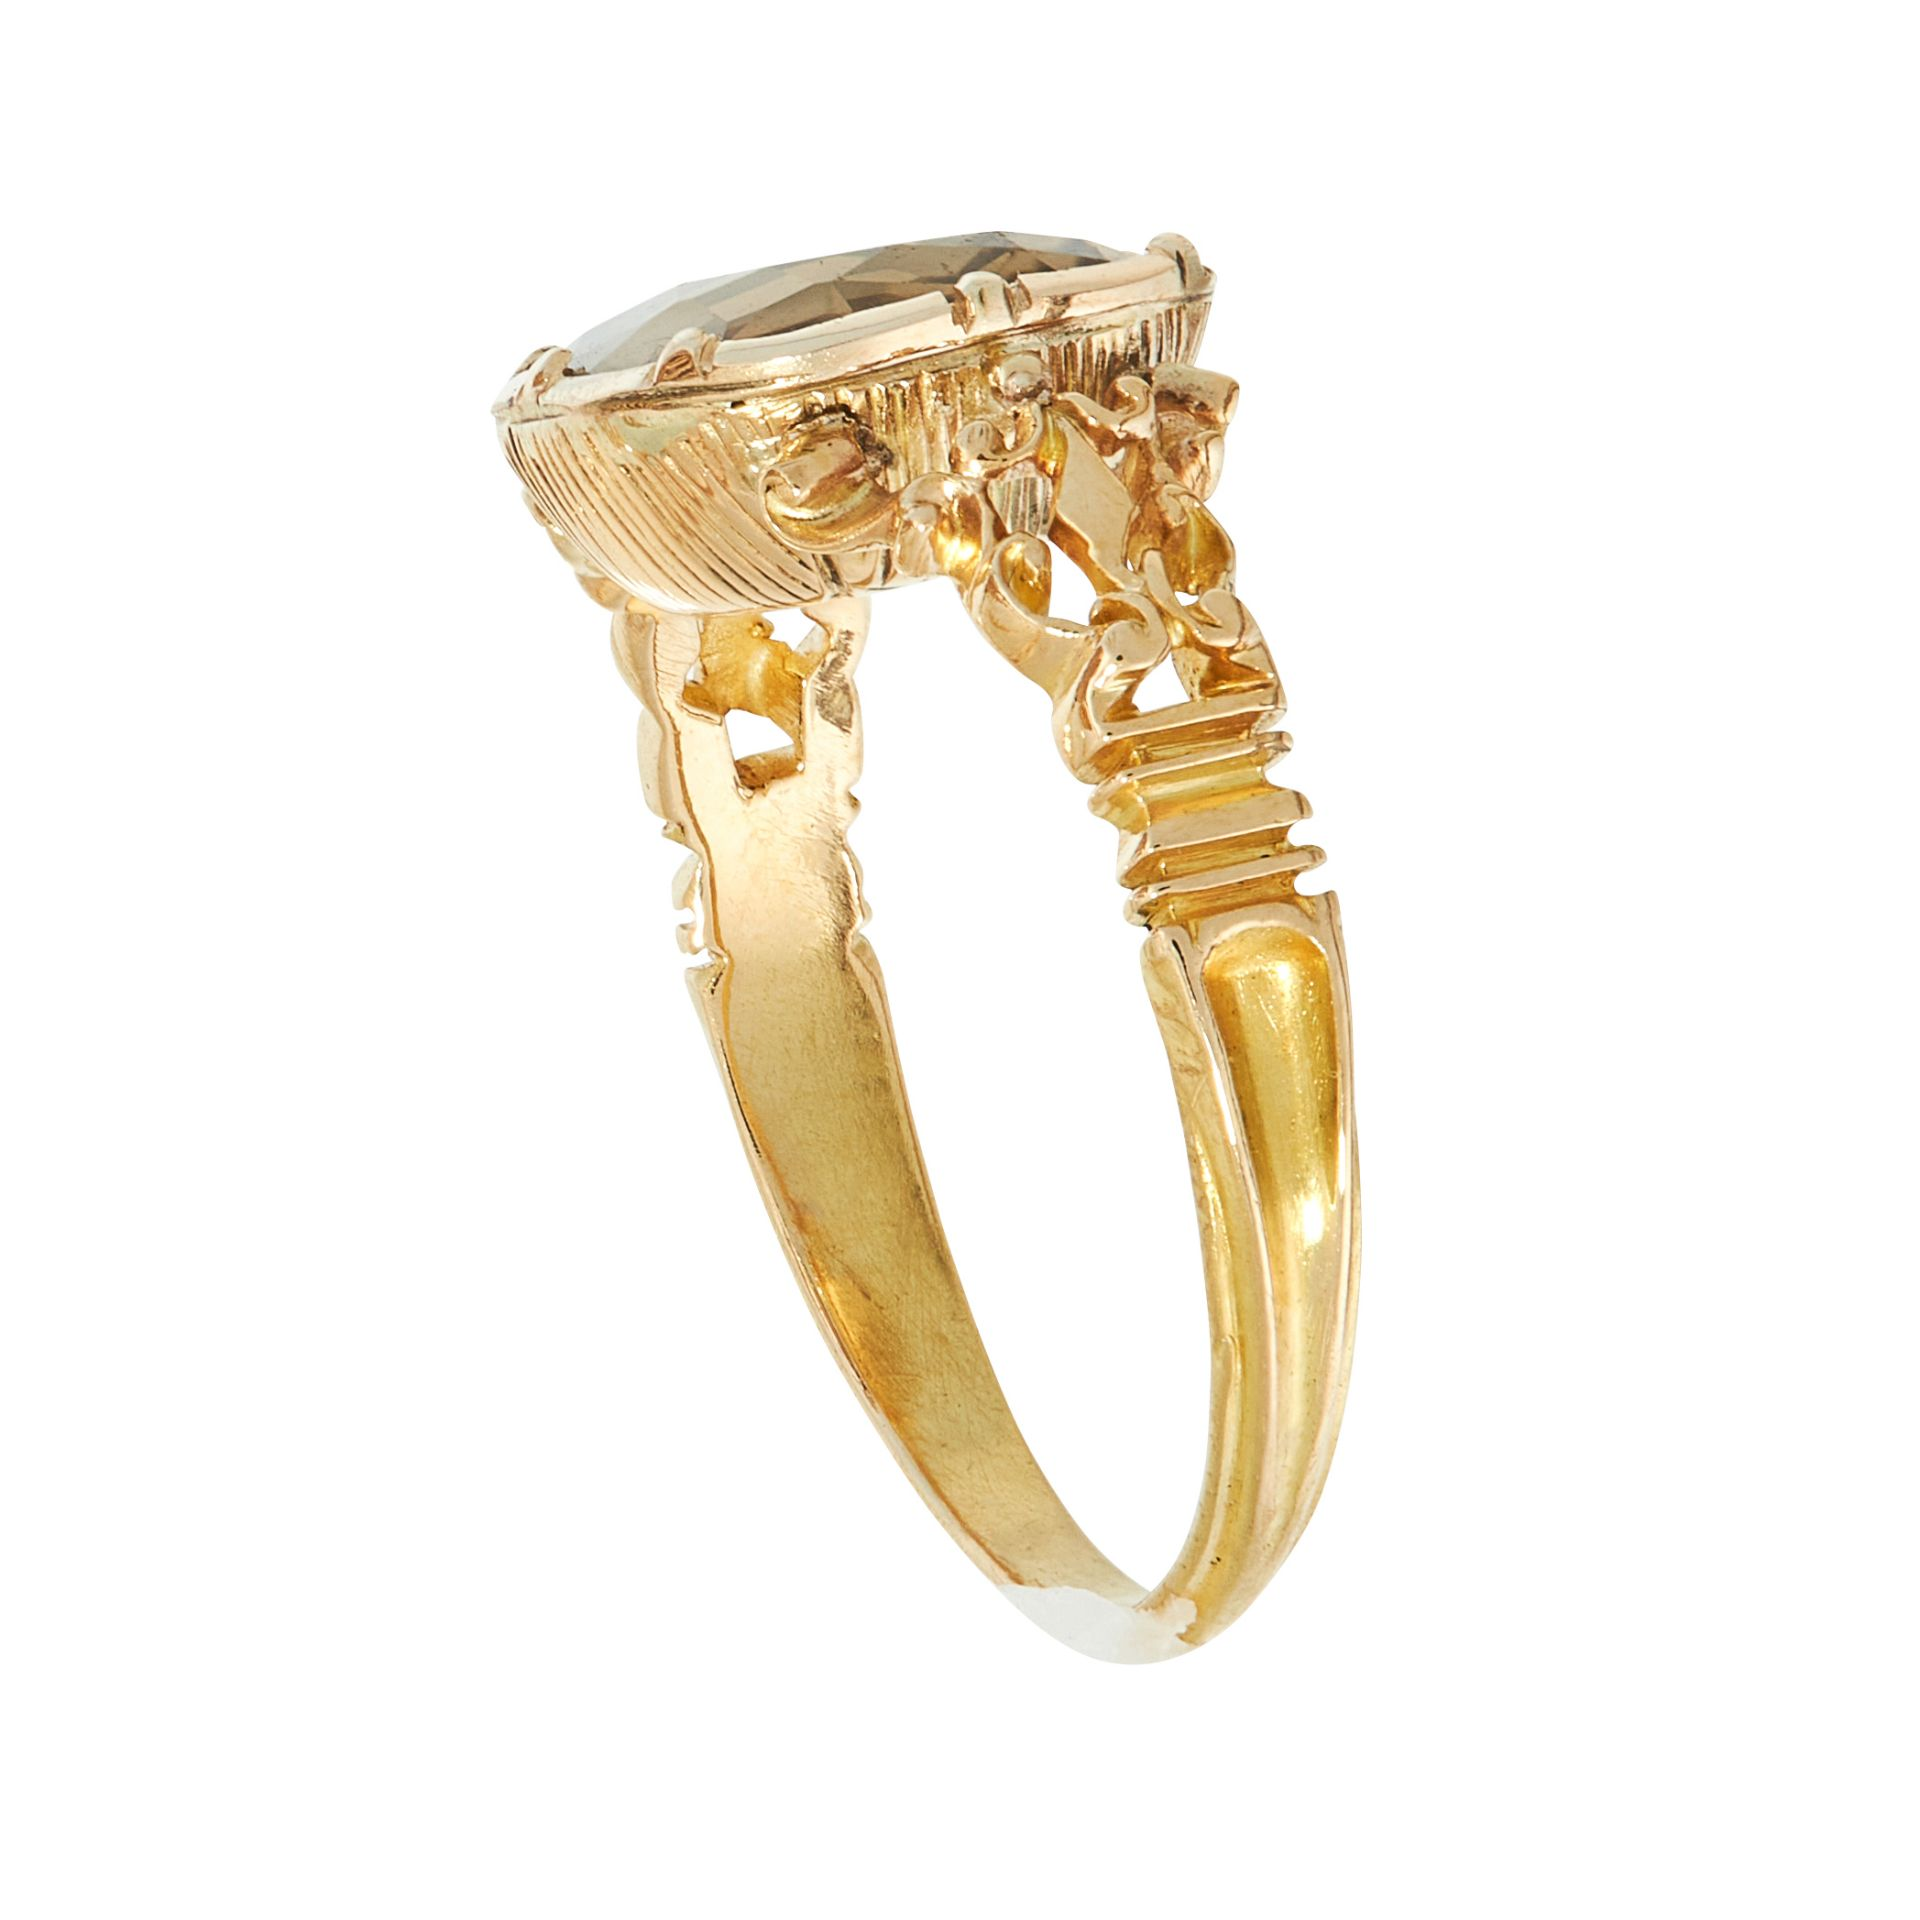 AN ANTIQUE SMOKY QUARTZ / CITRINE DRESS RING, 19TH CENTURY in yellow gold, set with a central - Image 2 of 2